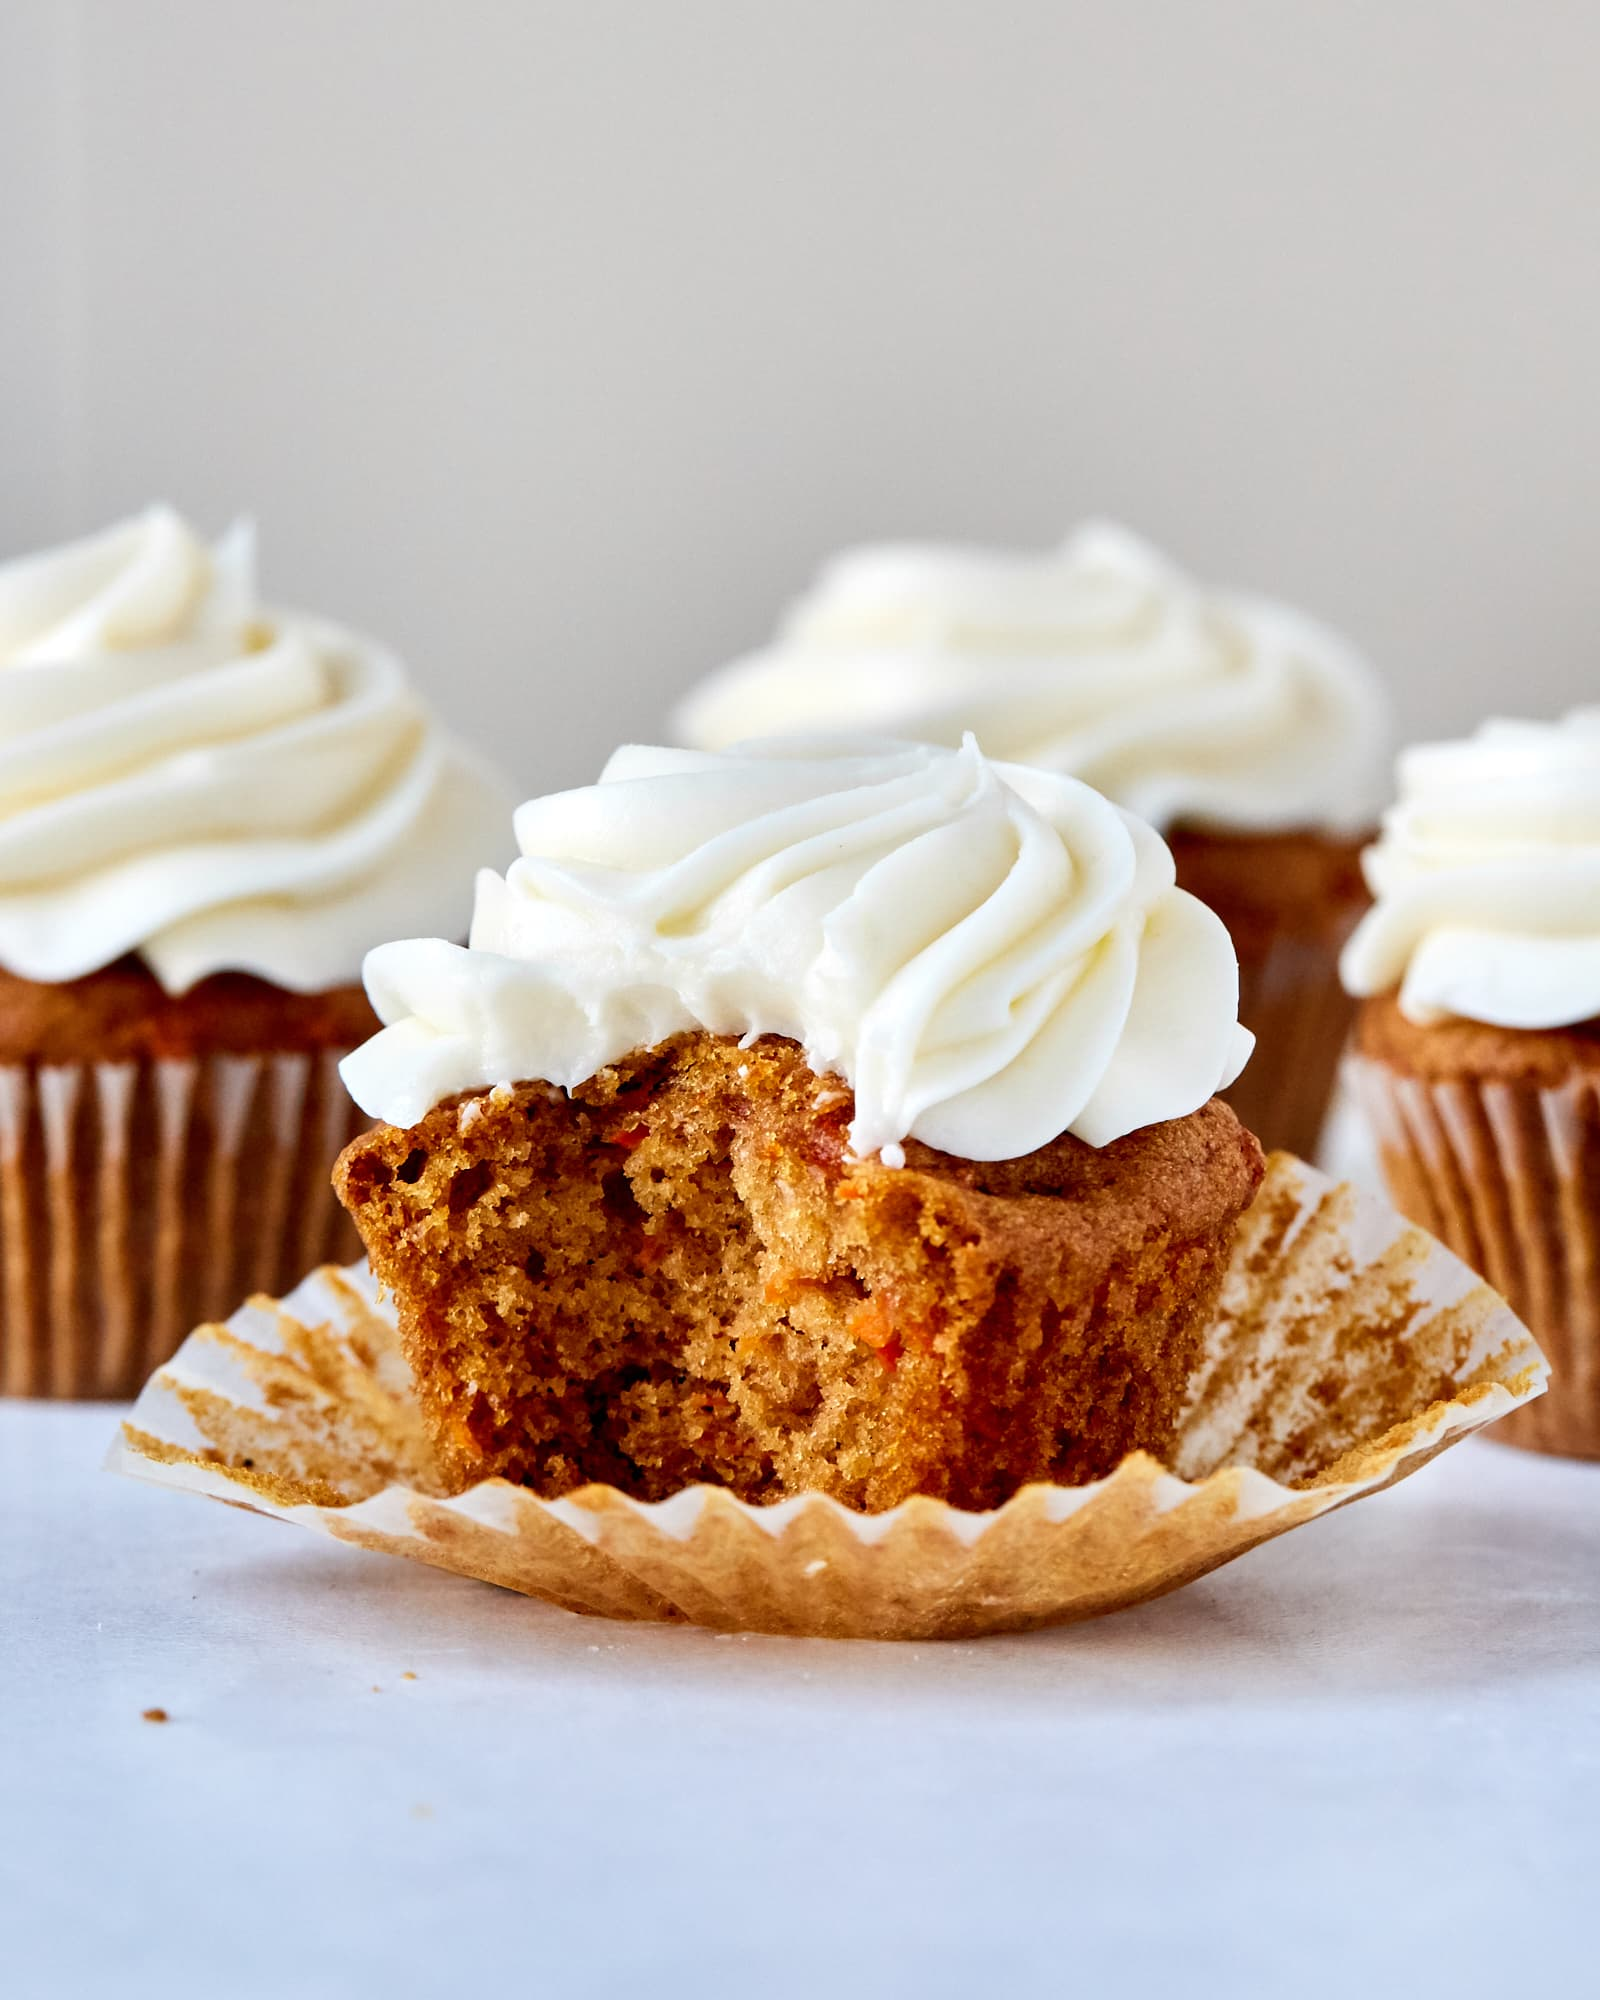 Recipe: Easy Carrot Cake Cupcakes with Cream Cheese Frosting